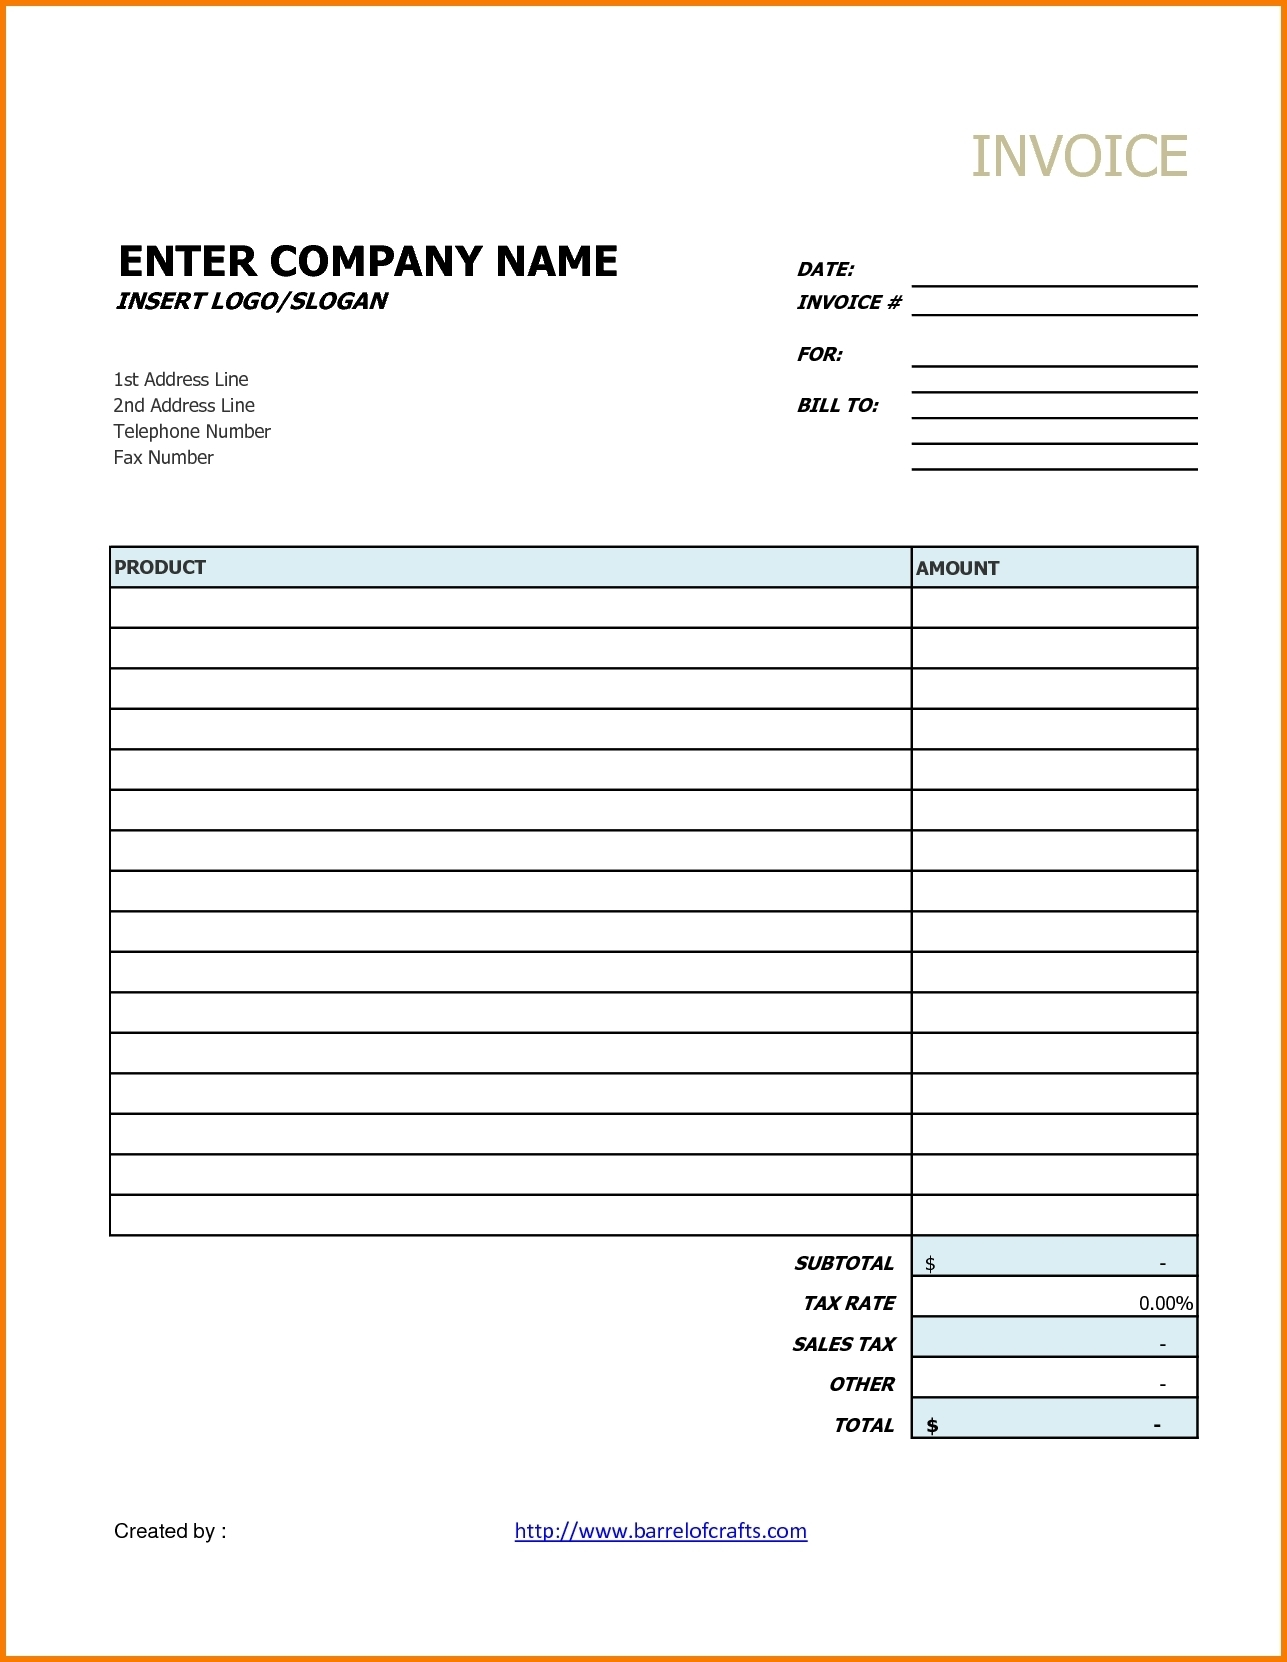 google docs invoice template cryptoave google documents invoice template